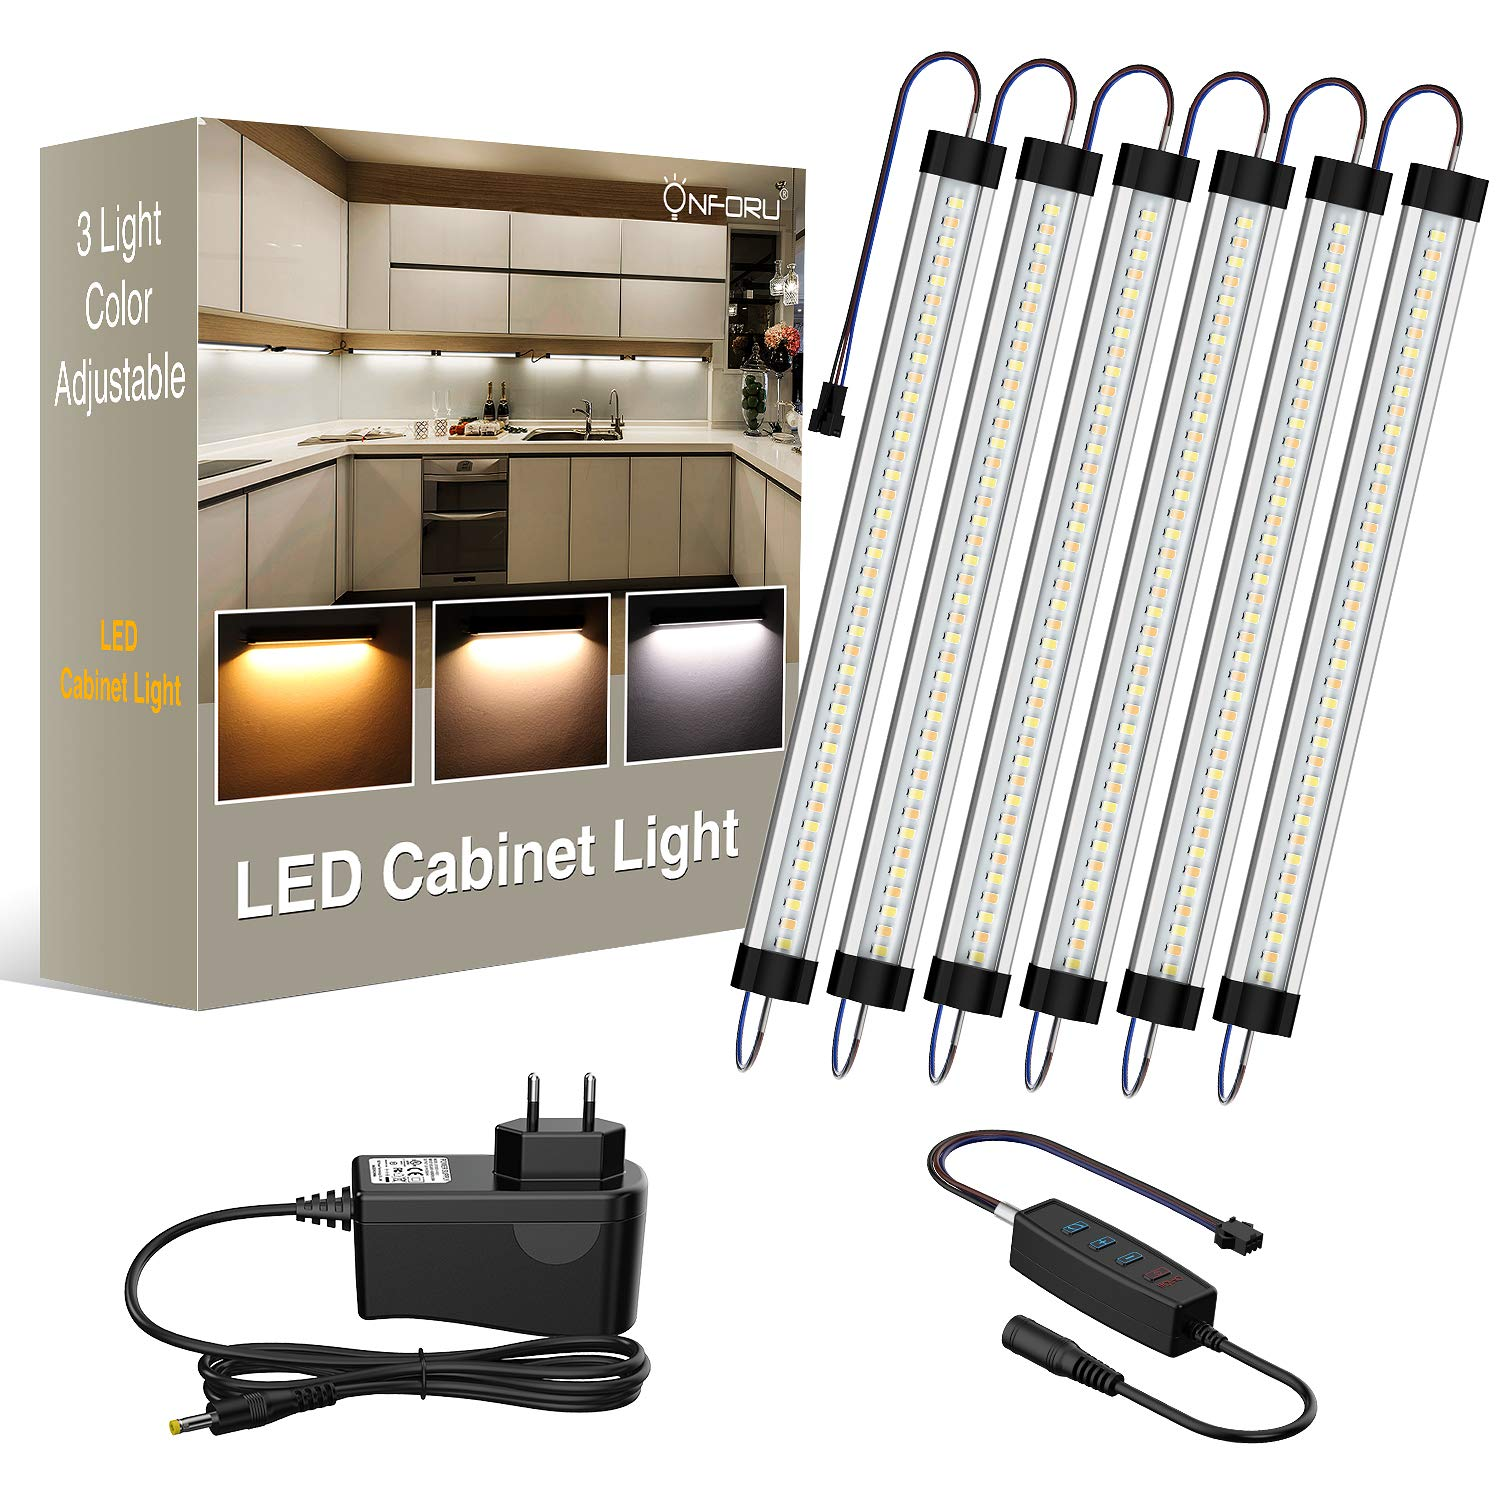 Onforu LED Under Cabinet Lighting Kit, 3 Adjustable Lights Color 2400lm Dimmable Strip Lights, Warm/Daylight/Neutral White Optional Under Counter Light Bar, DC 12V Closet Lights, Set of 6